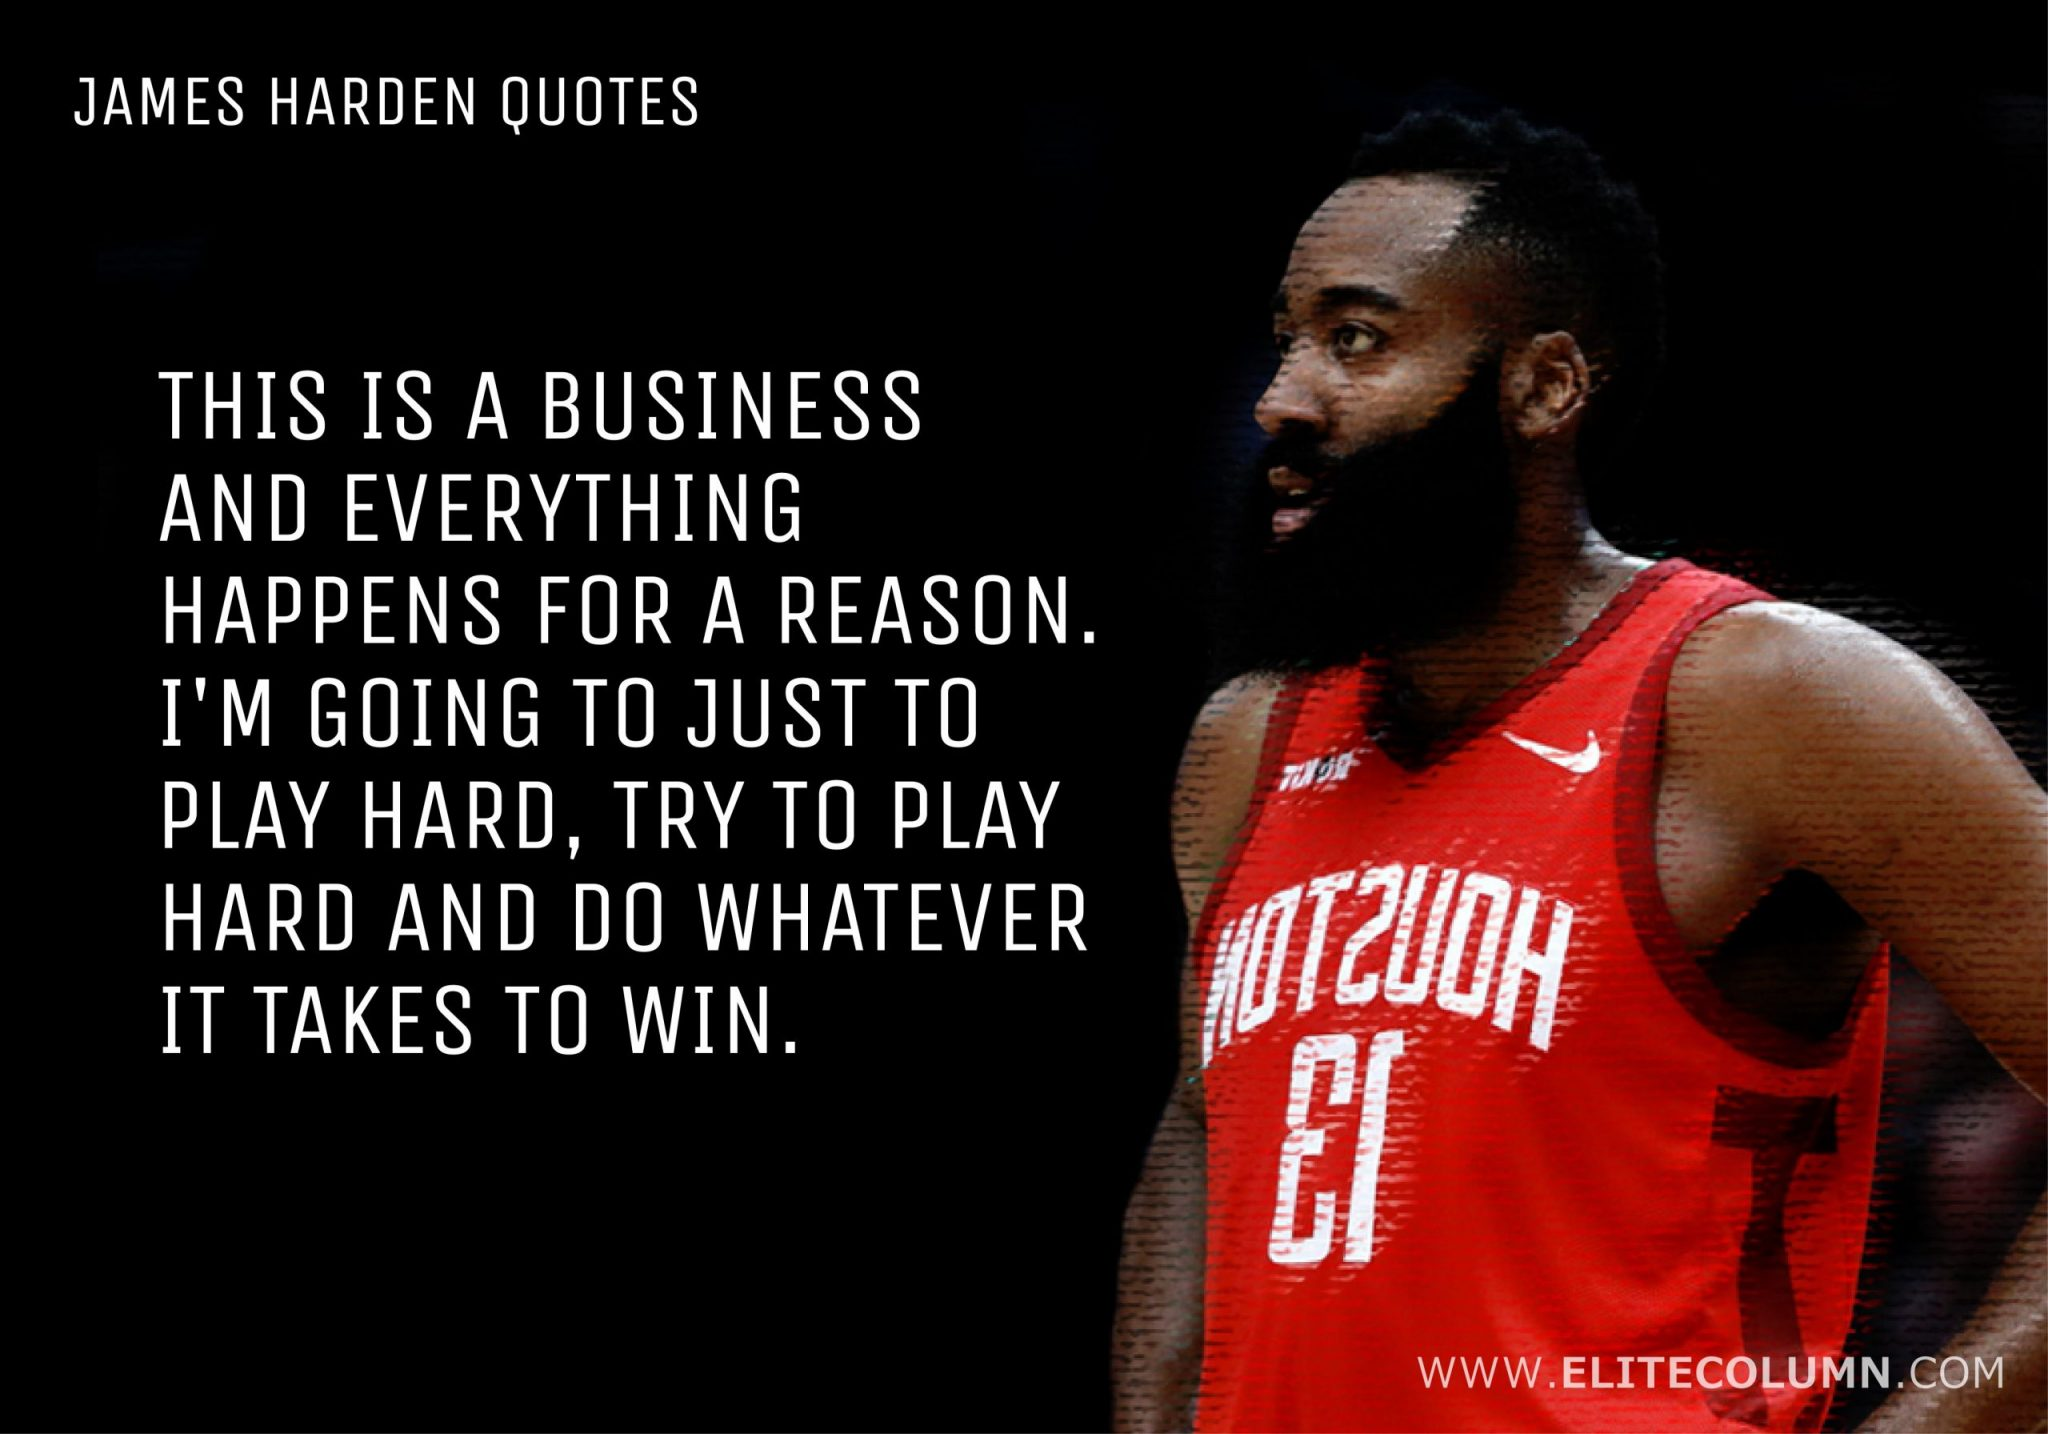 James Harden Quotes (14)